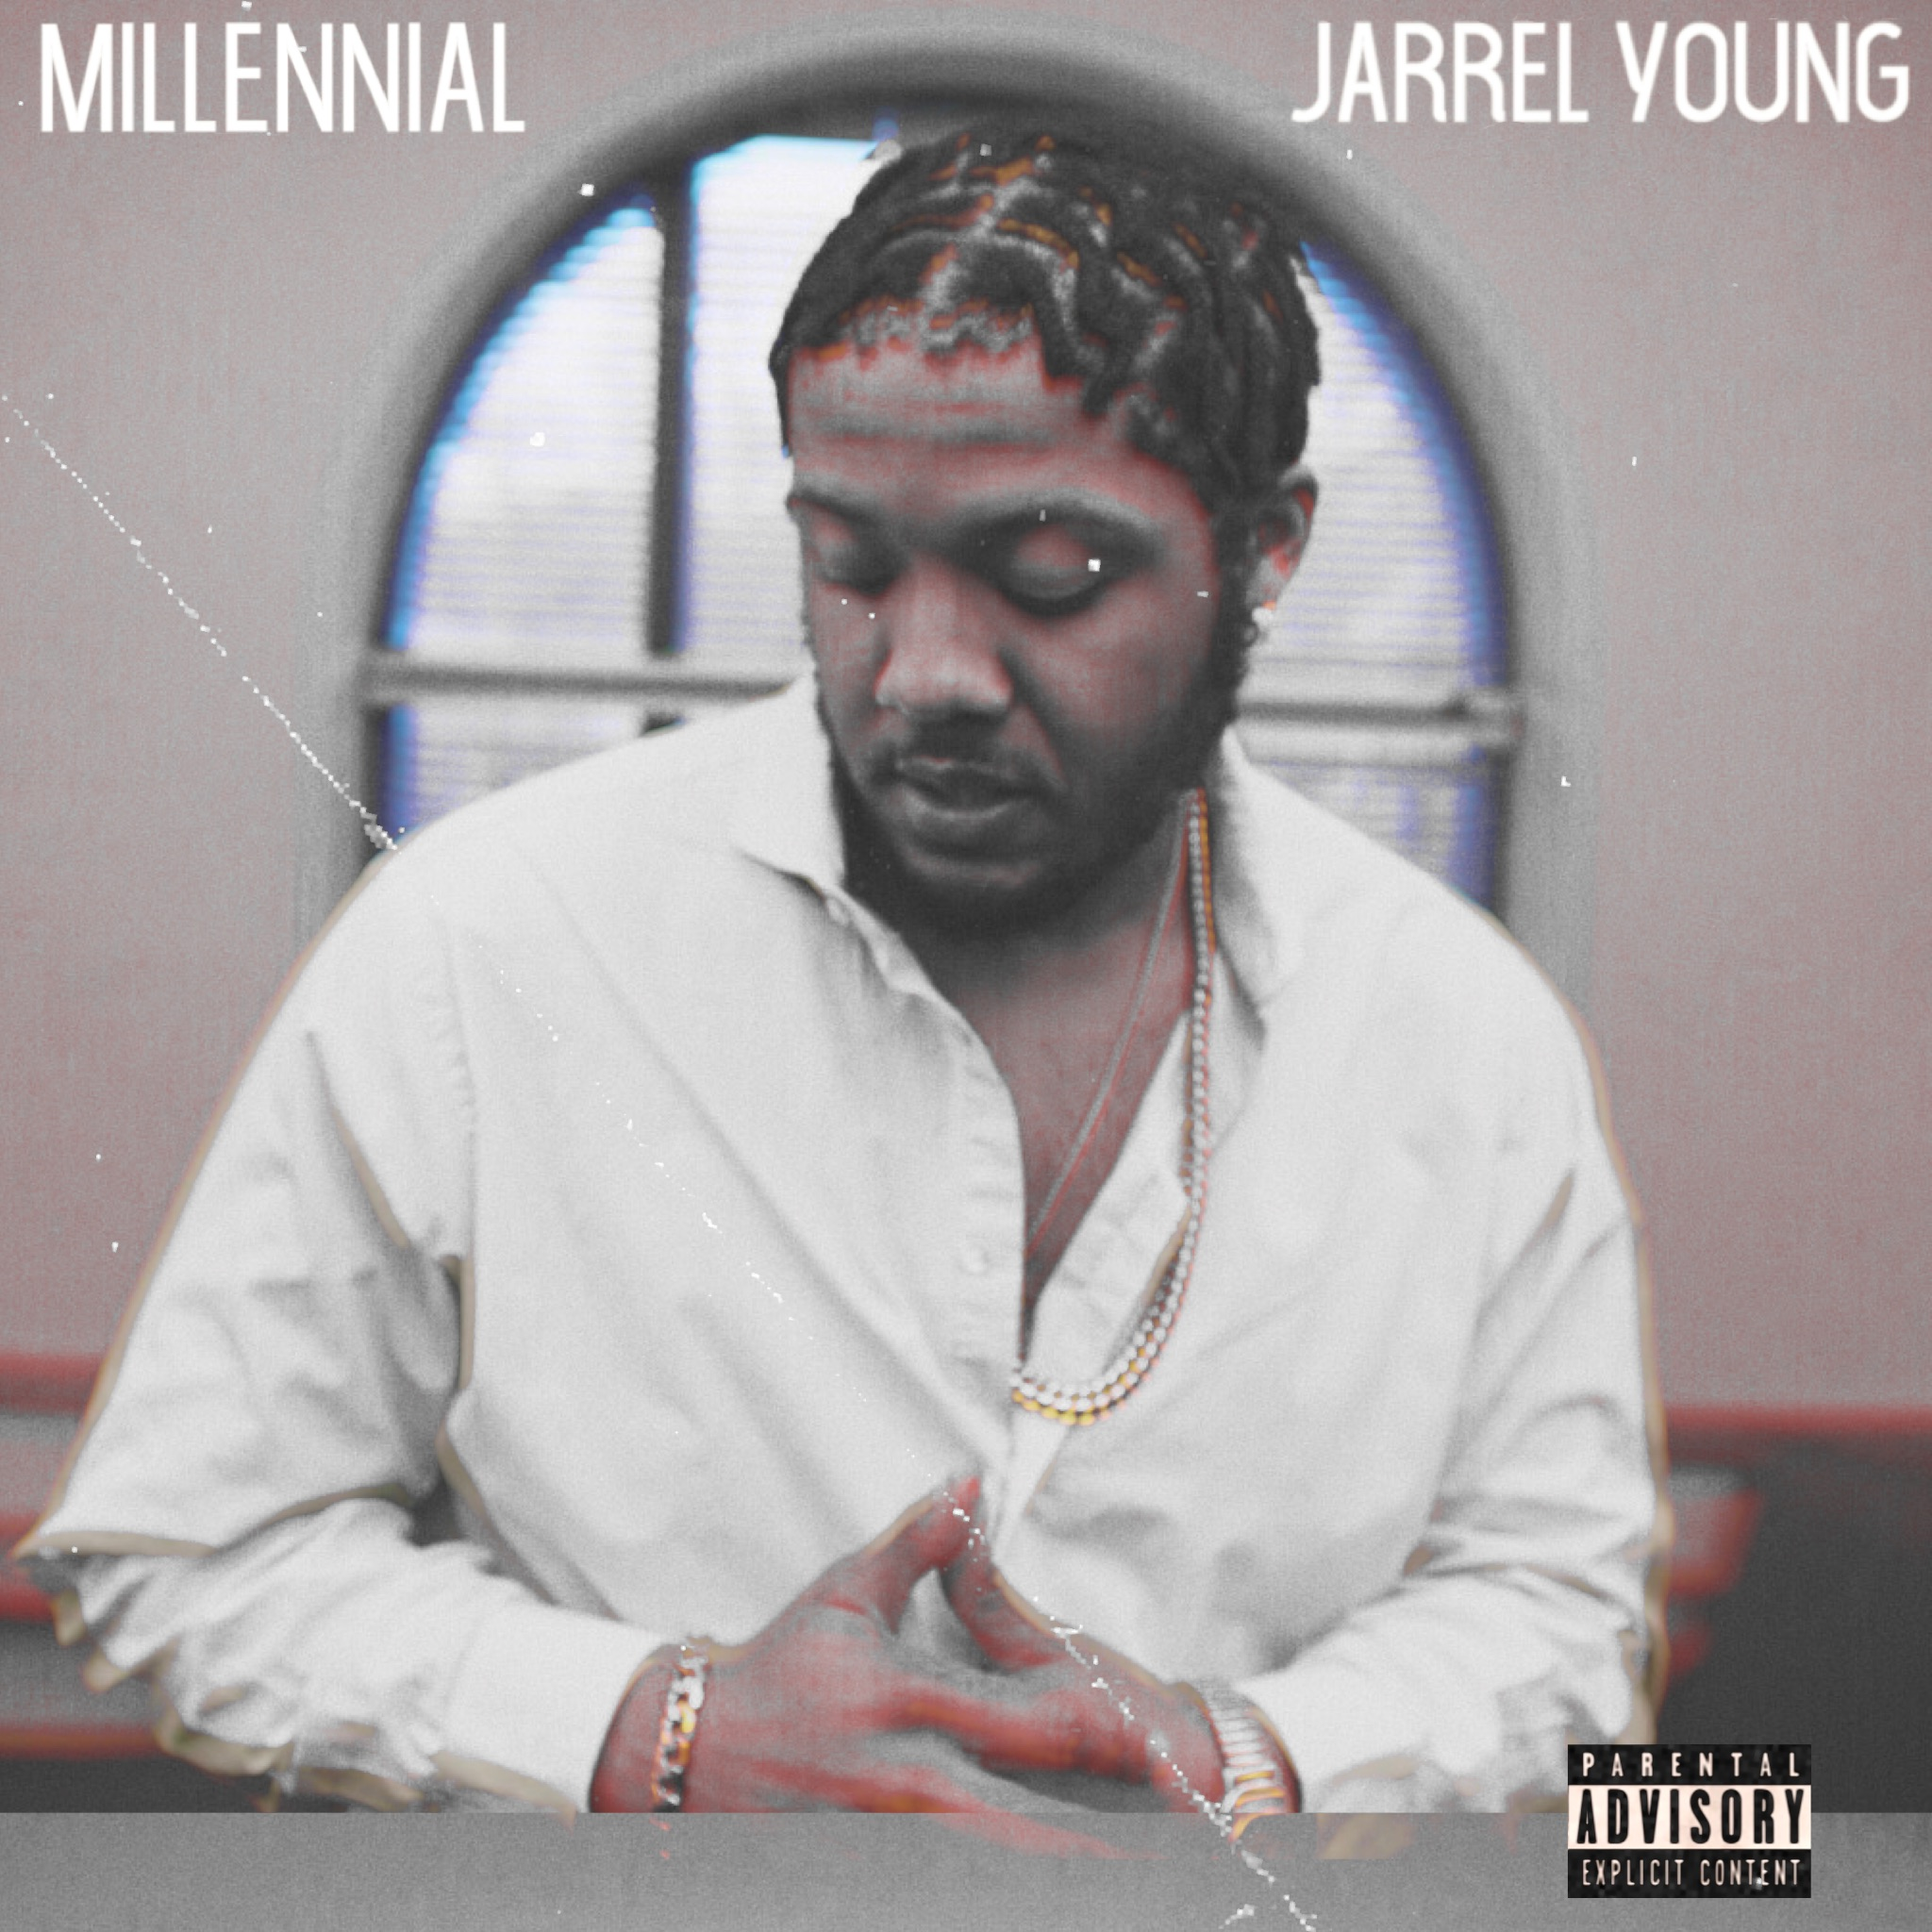 Jarrel Young - Alternative, Hip Hop, Pop